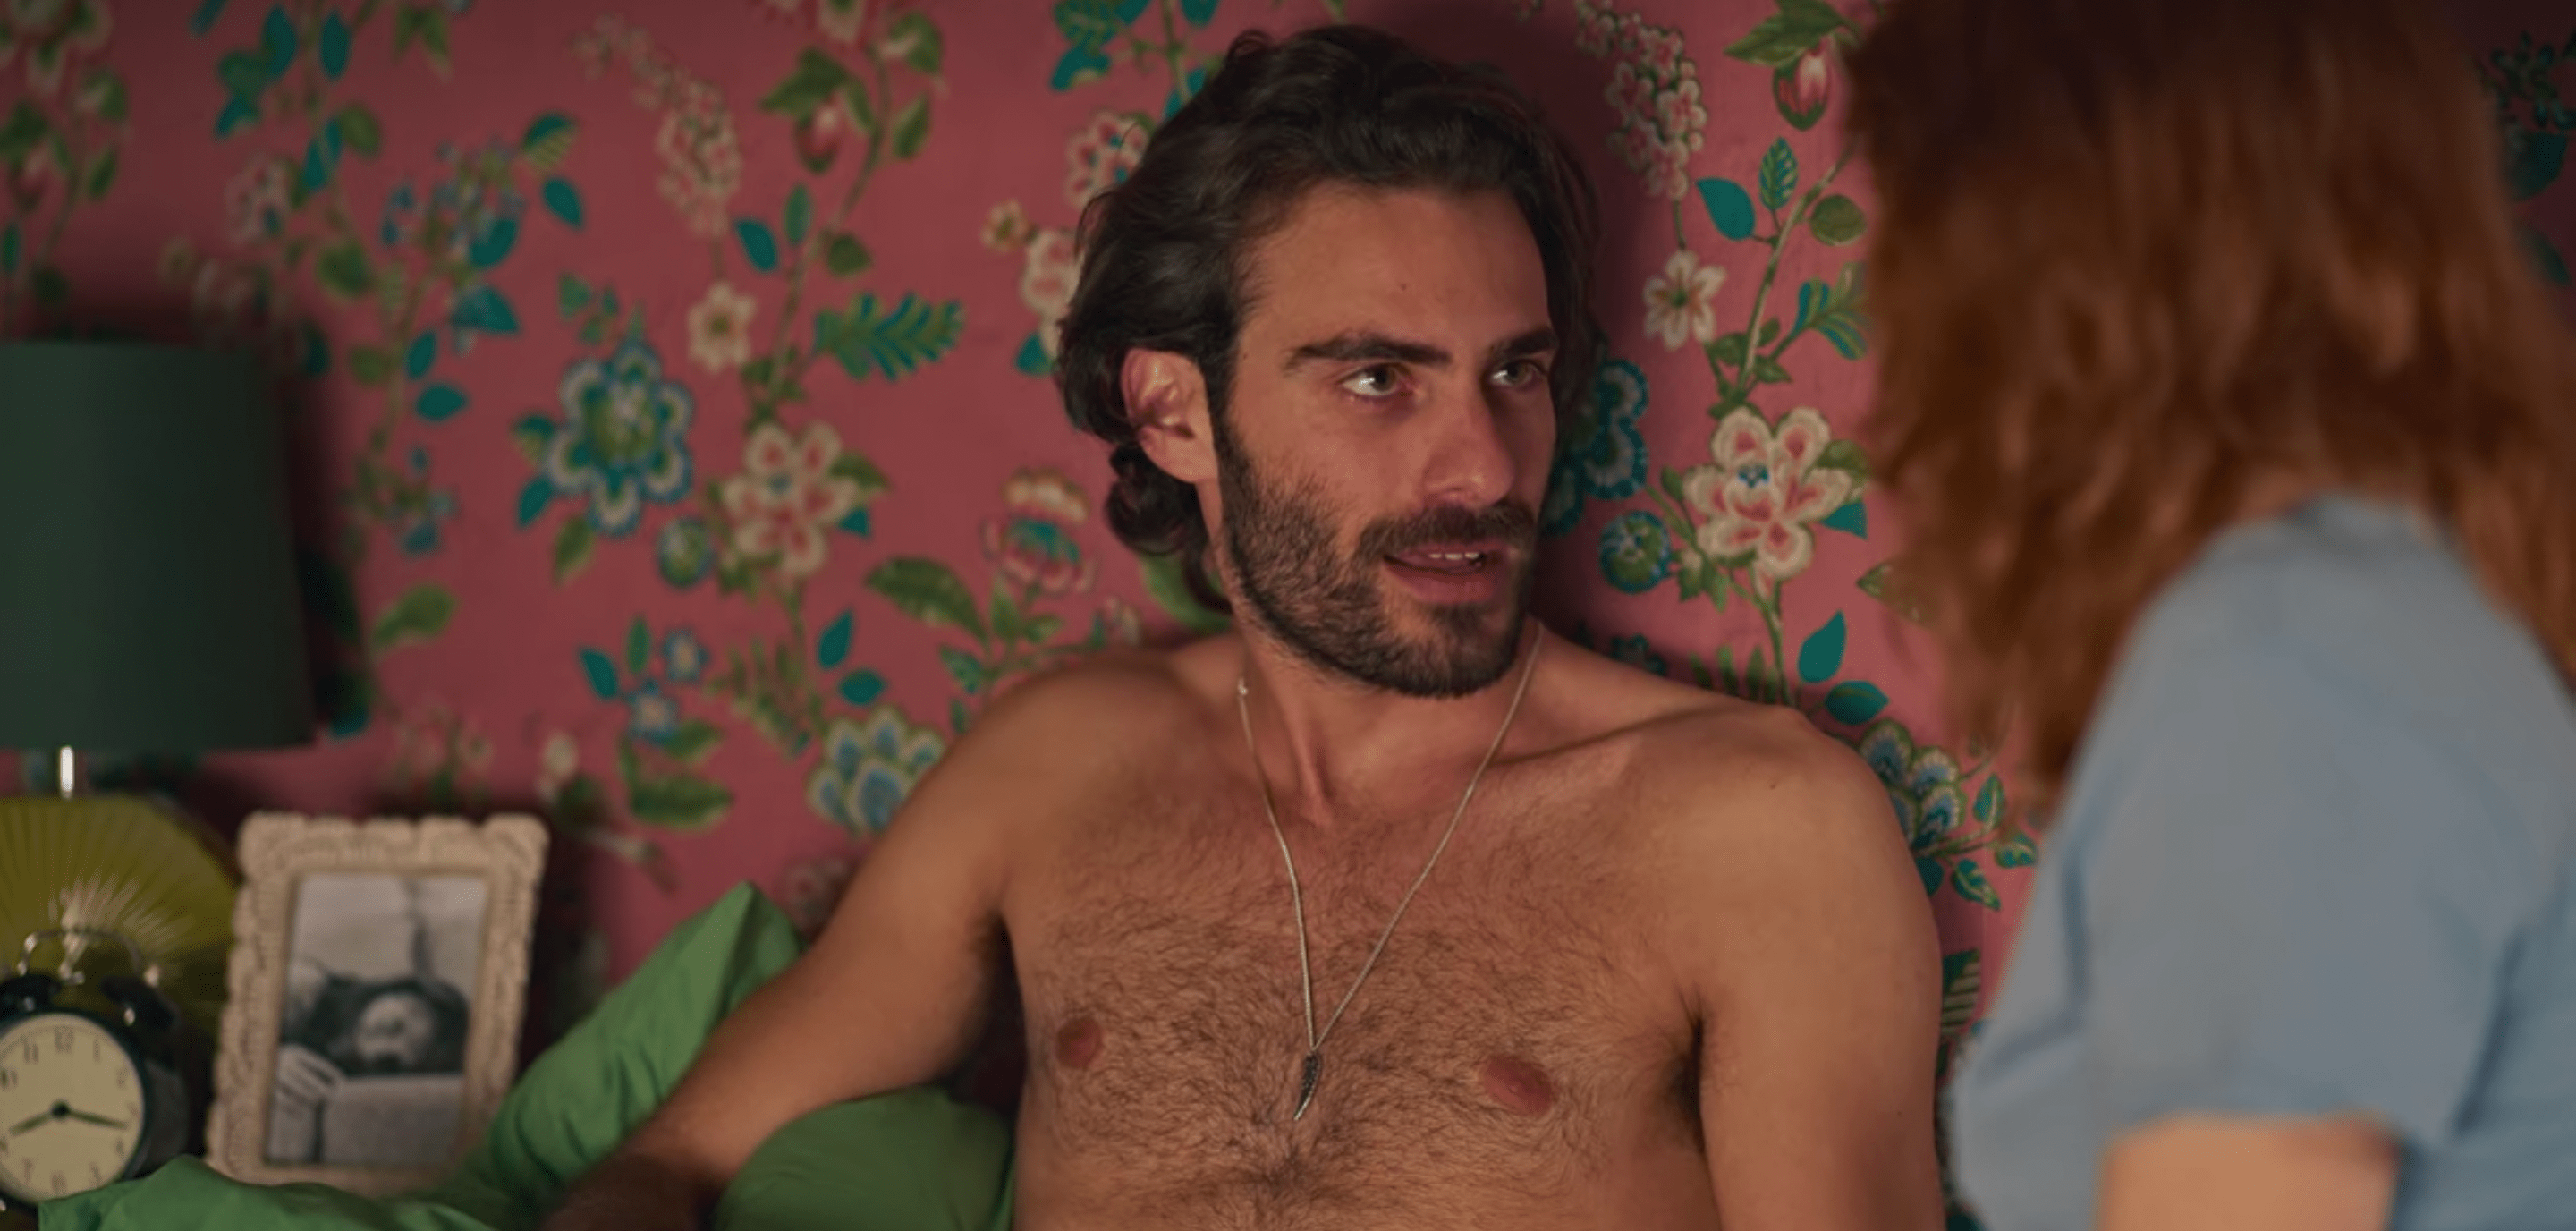 Adrian, a white man with dark brown hair and a scruffy beard, sitting shirtless against pink floral wallpaper in a bedroom. Under his arm is a green pillow and next to him is a nightstand with a black and white photo of Valeria, an old alarm clock, and a green lamp.